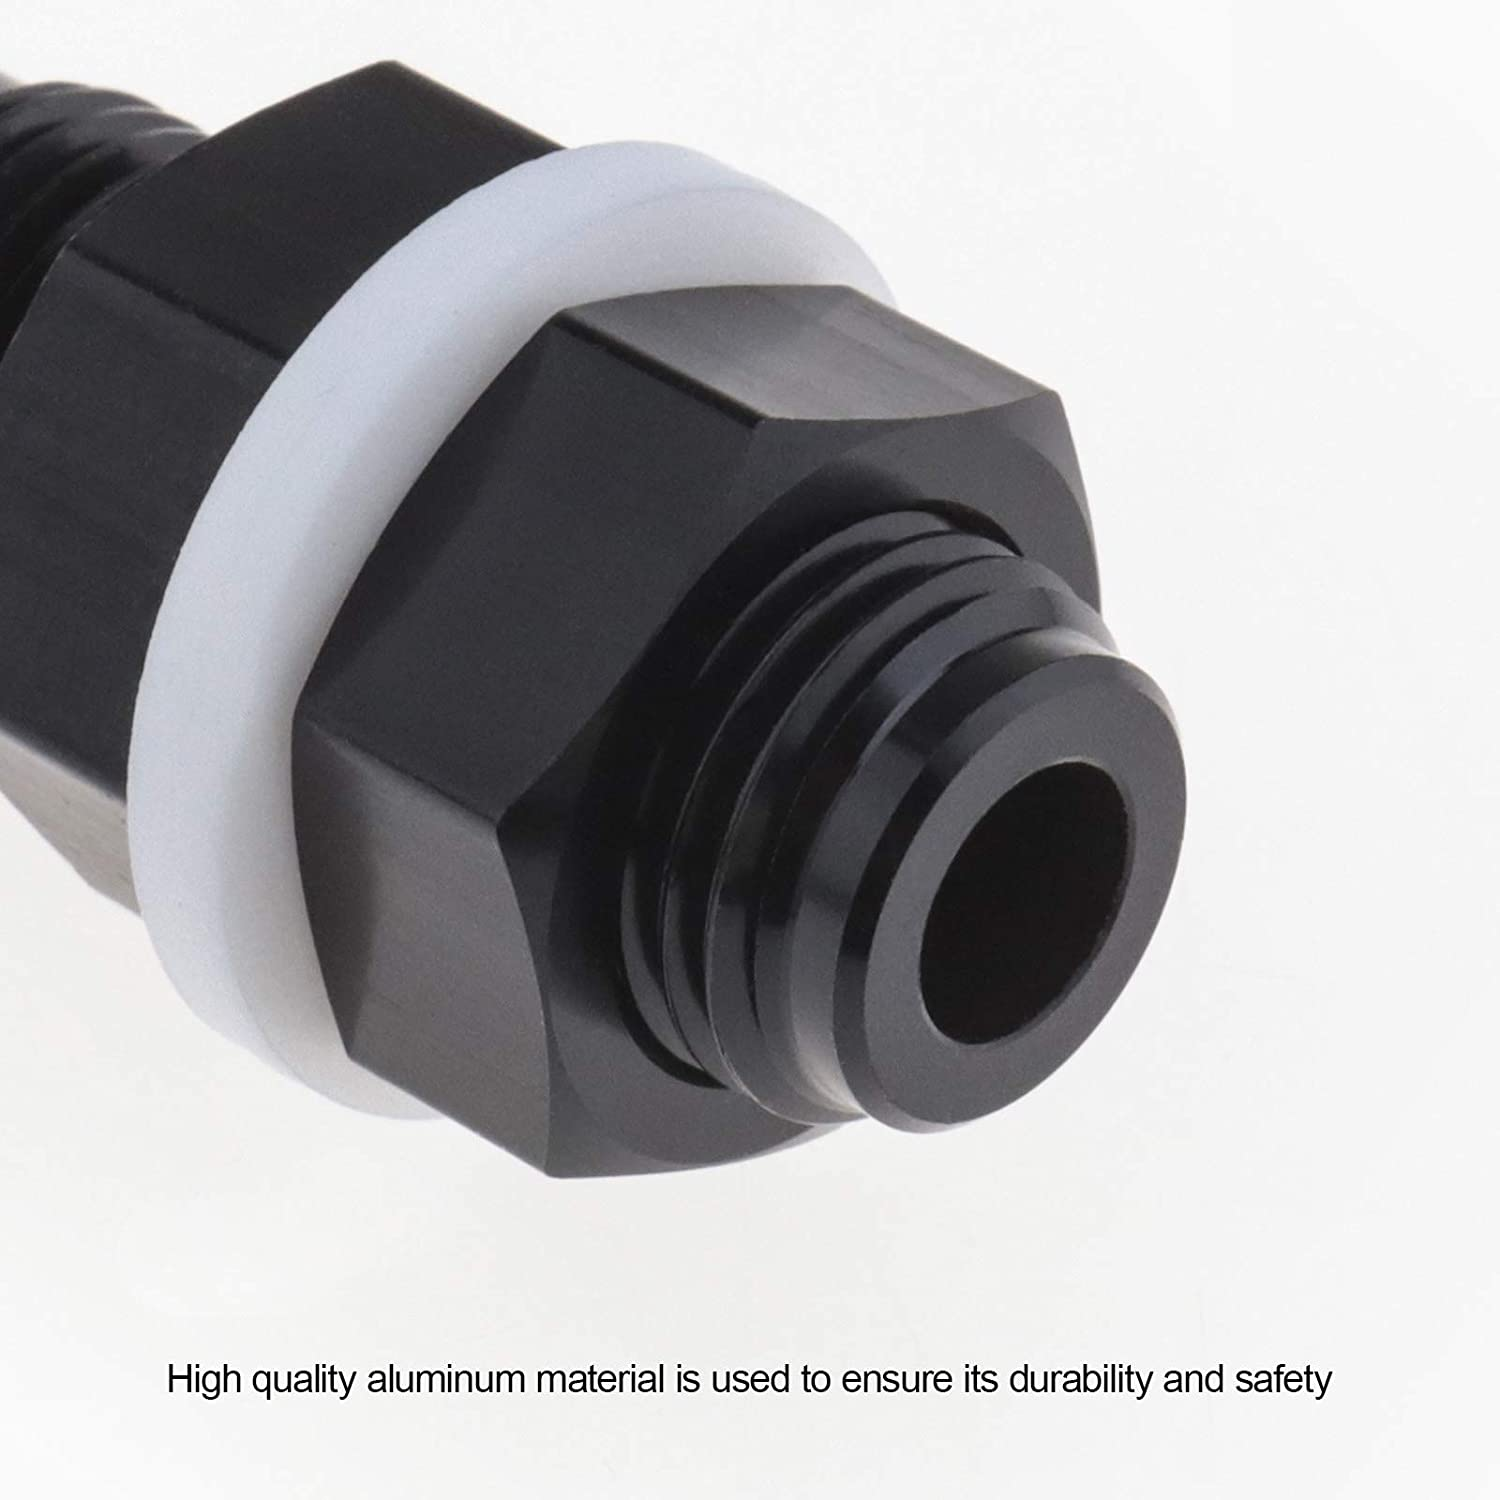 AN6 Bulkhead Adapter Fitting Aluminum Anodized for Fuel line to Fuel Cell Tank Pump Connection